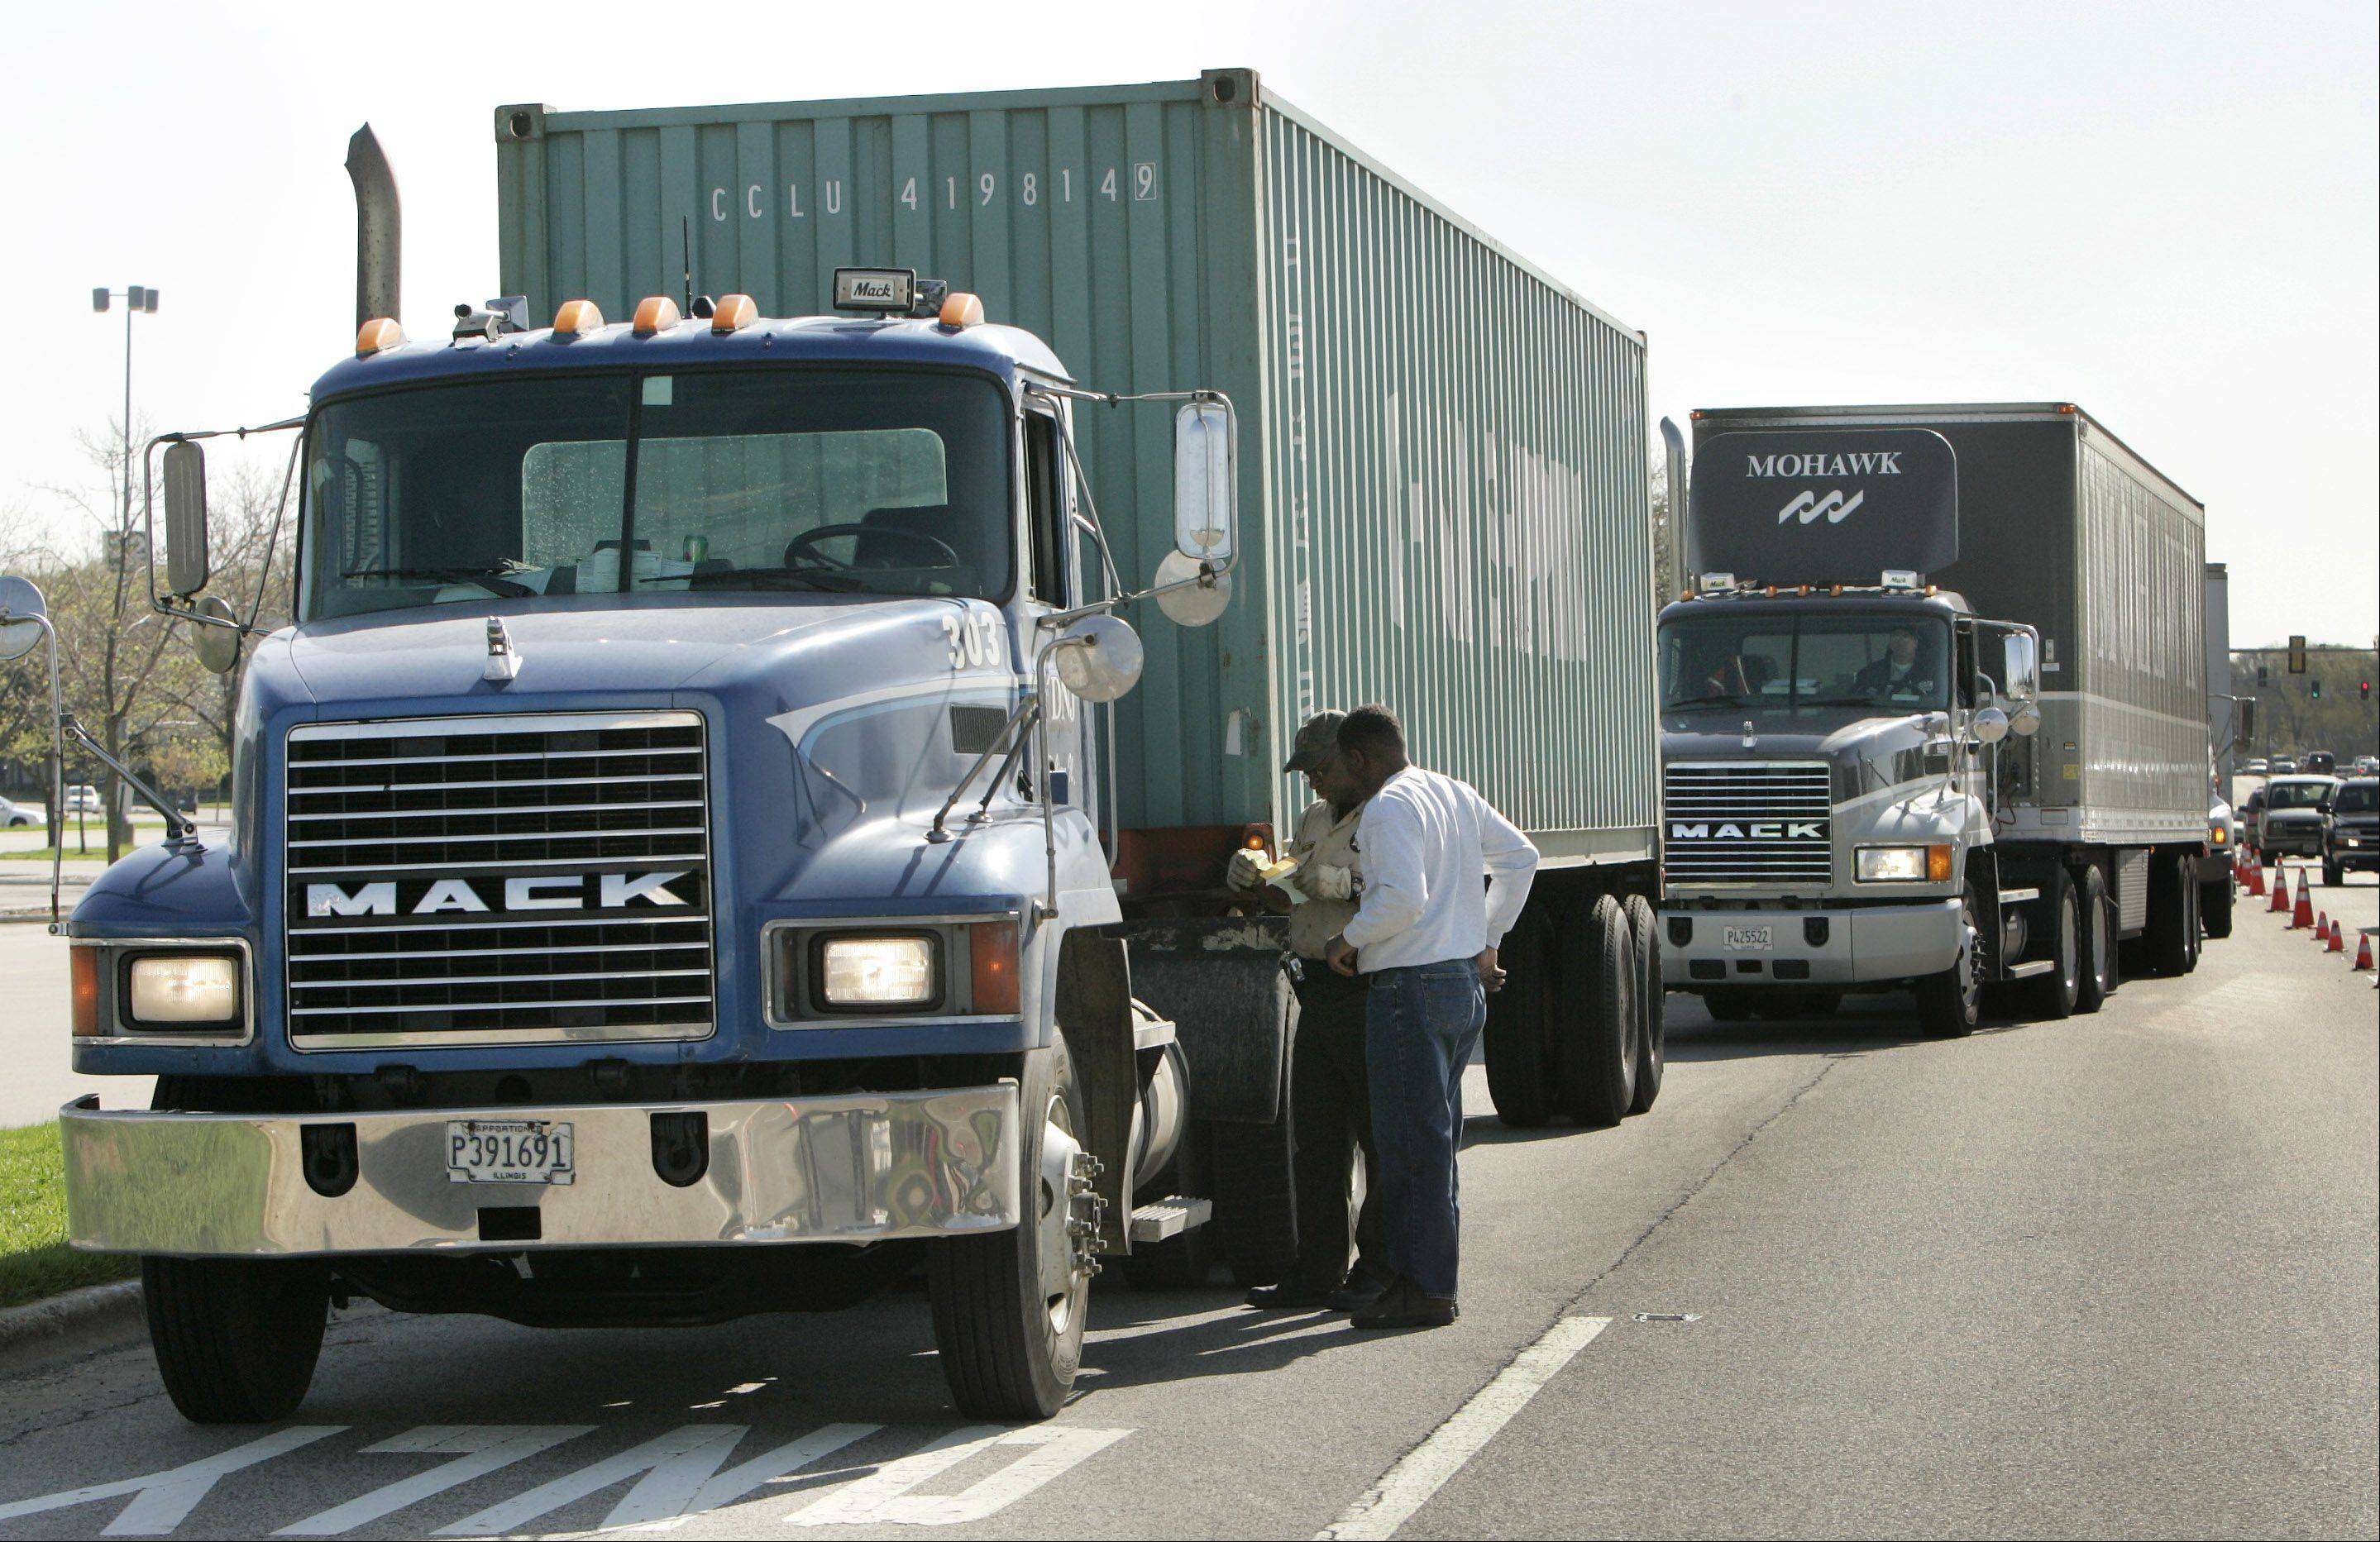 The U.S. Department of Labor has recovered $25,000 in back wages owed to 10 truck drivers who were part of a federally funded highway project near Chicago.